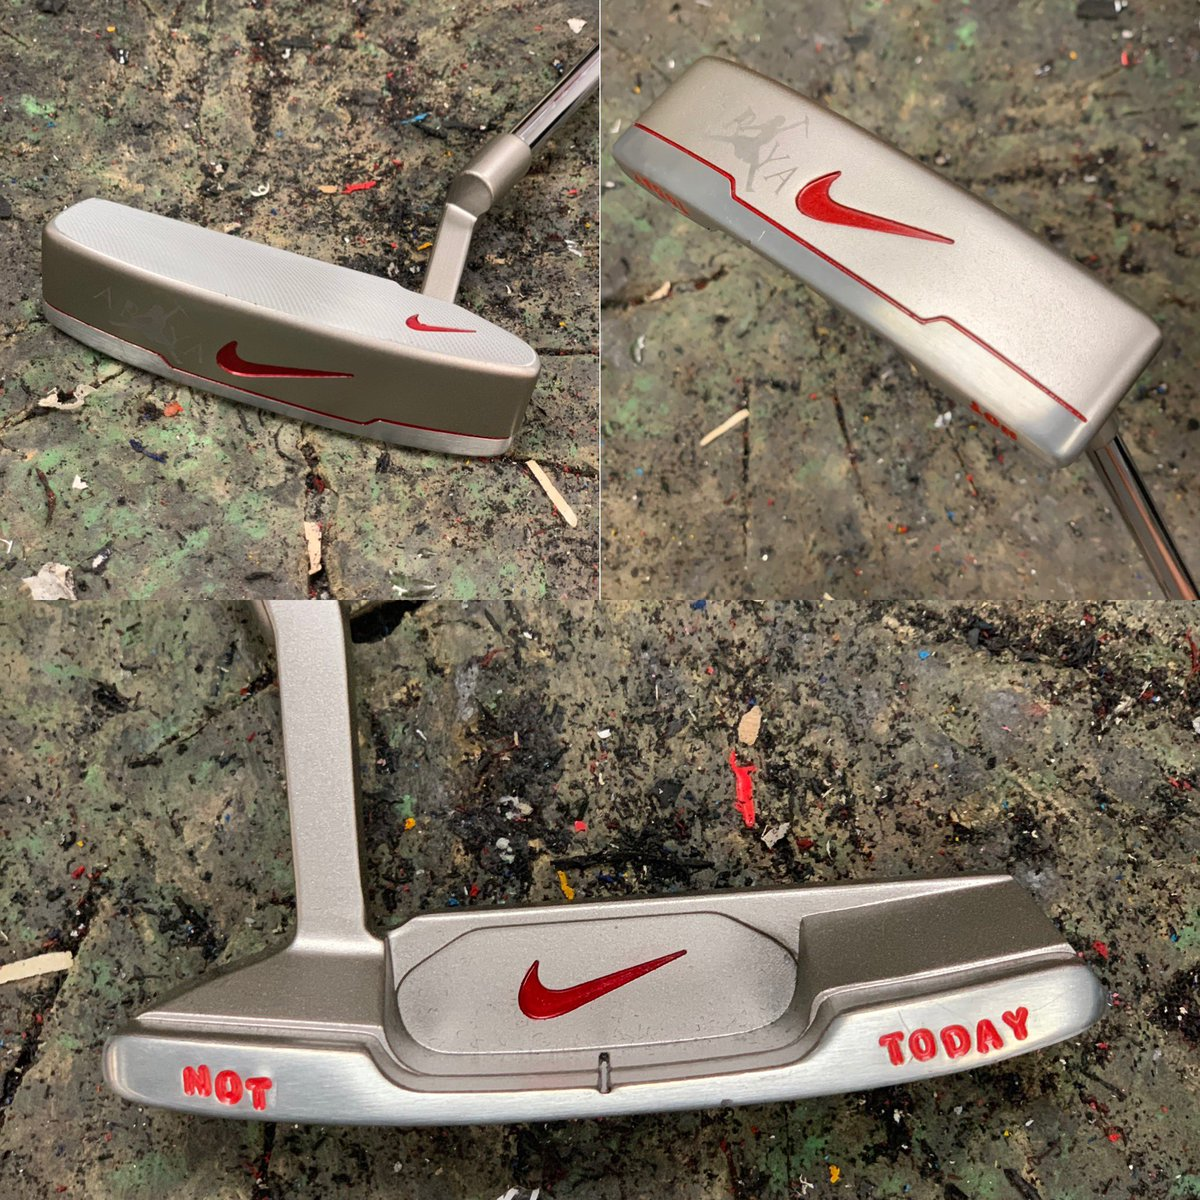 🚨 GIVEAWAY TIME 🚨   Win a Game Of Thrones Air Arya Nike Putter!  How To Win?  1️⃣ Like this post  2️⃣ Retweet  3️⃣ Follow @DallasGolf   Winner will be chosen on 7/21       #got #gameofthrones #winterfell #arya #theopen   *Valid US address only